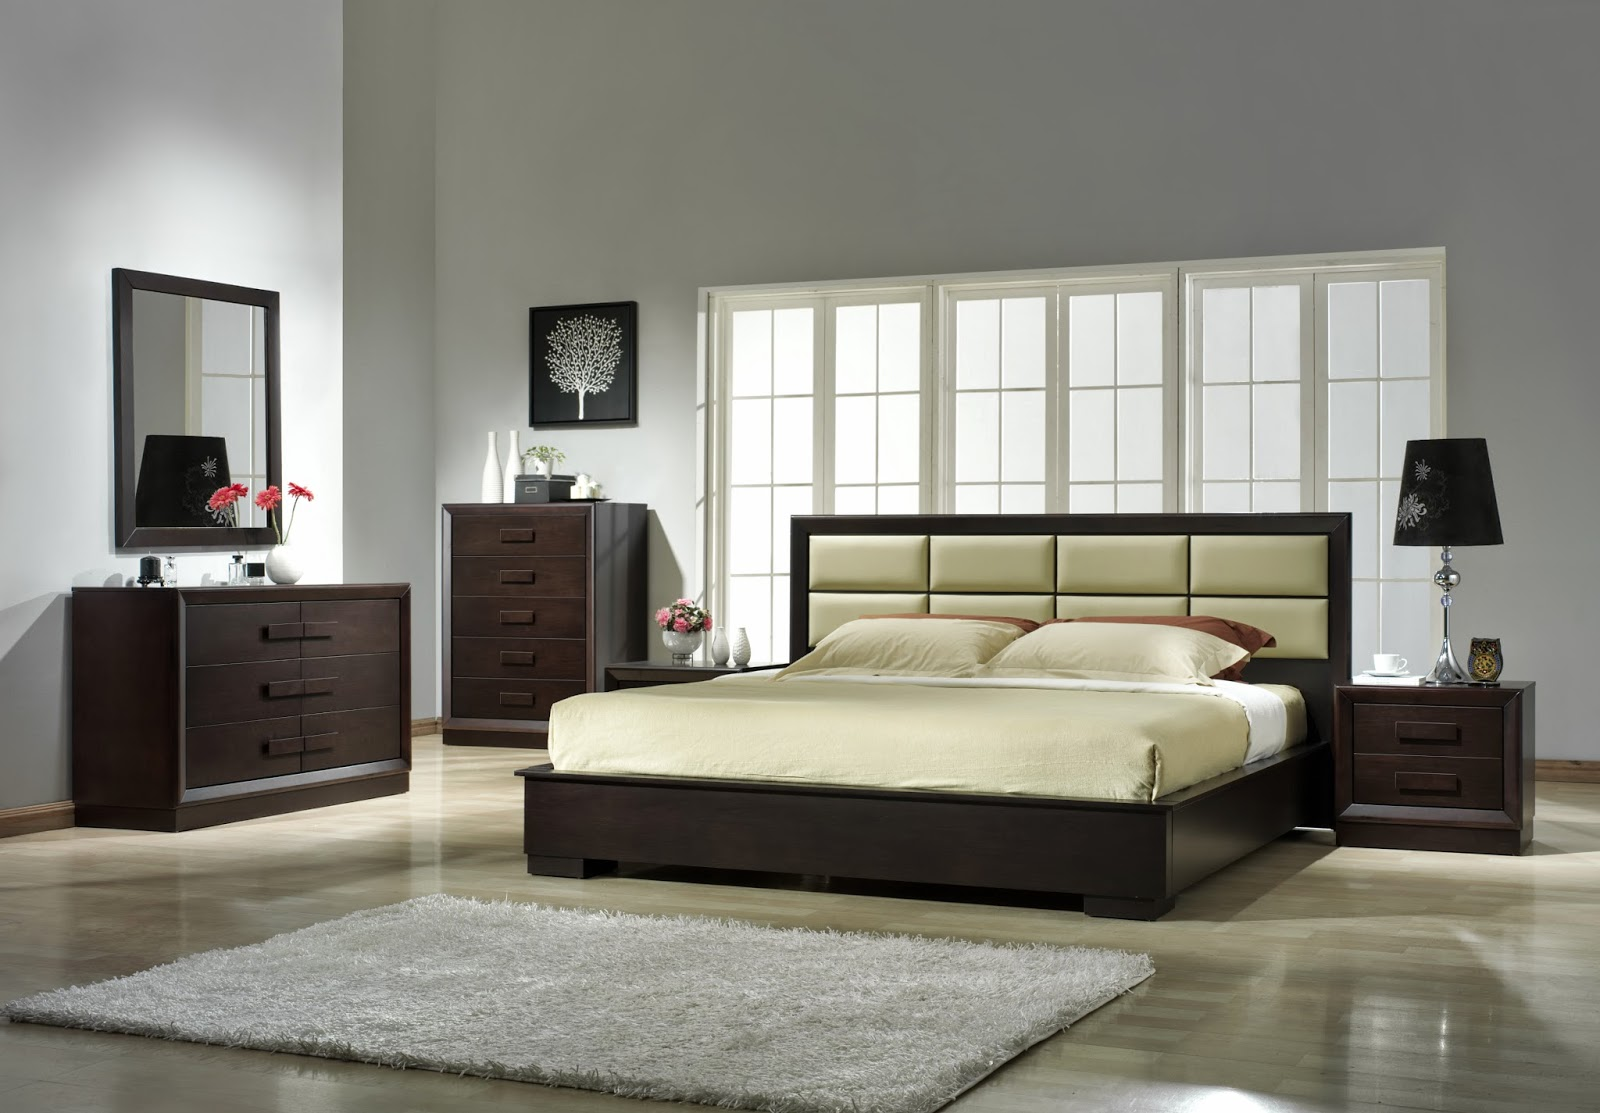 Bedroom Furniture Sets also Bedroom Furniture Sets likewise Cheap ...